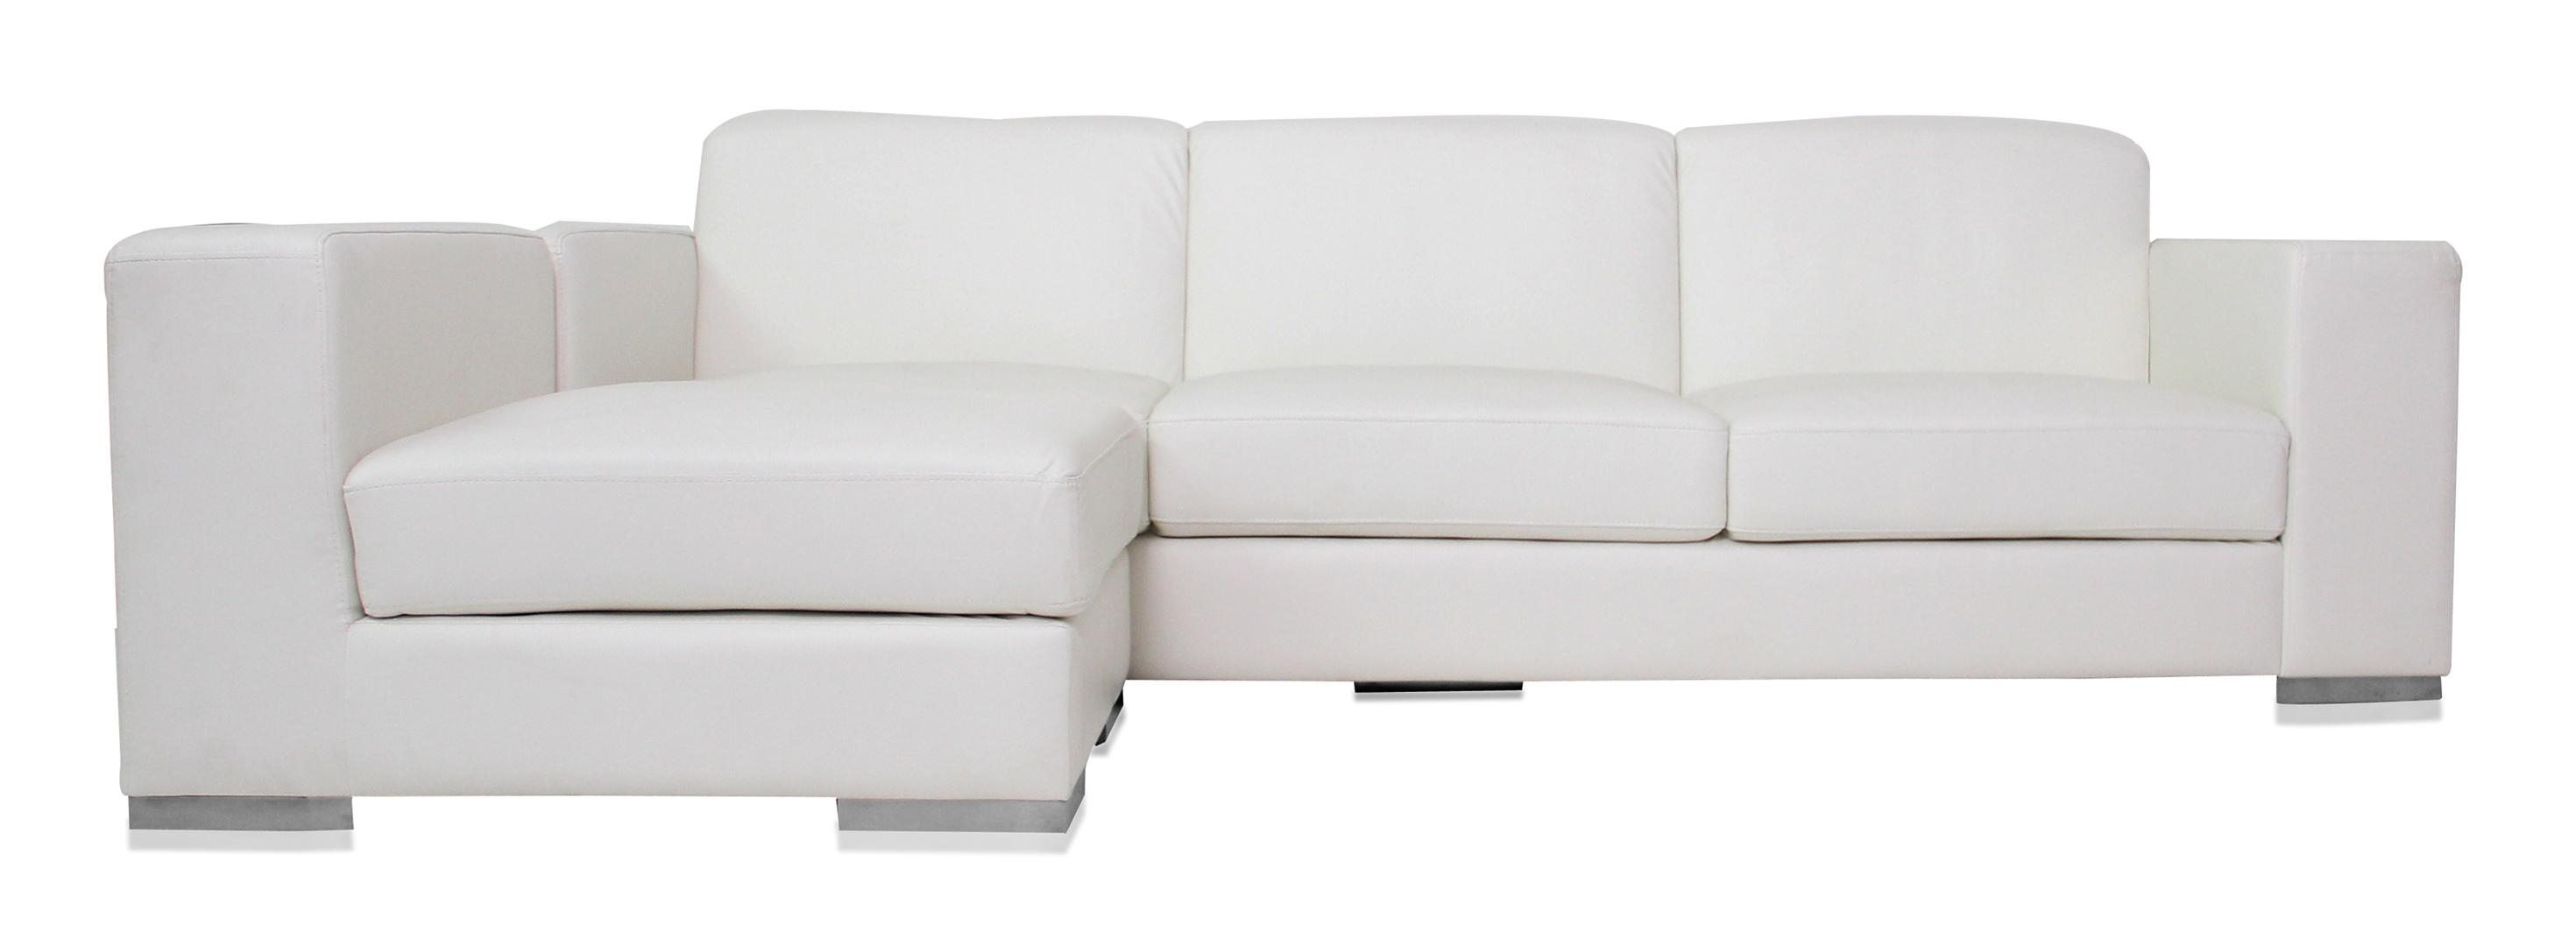 contemporary design sofa bed sleeper sofas under 1000 20 43 choices of white leather ideas